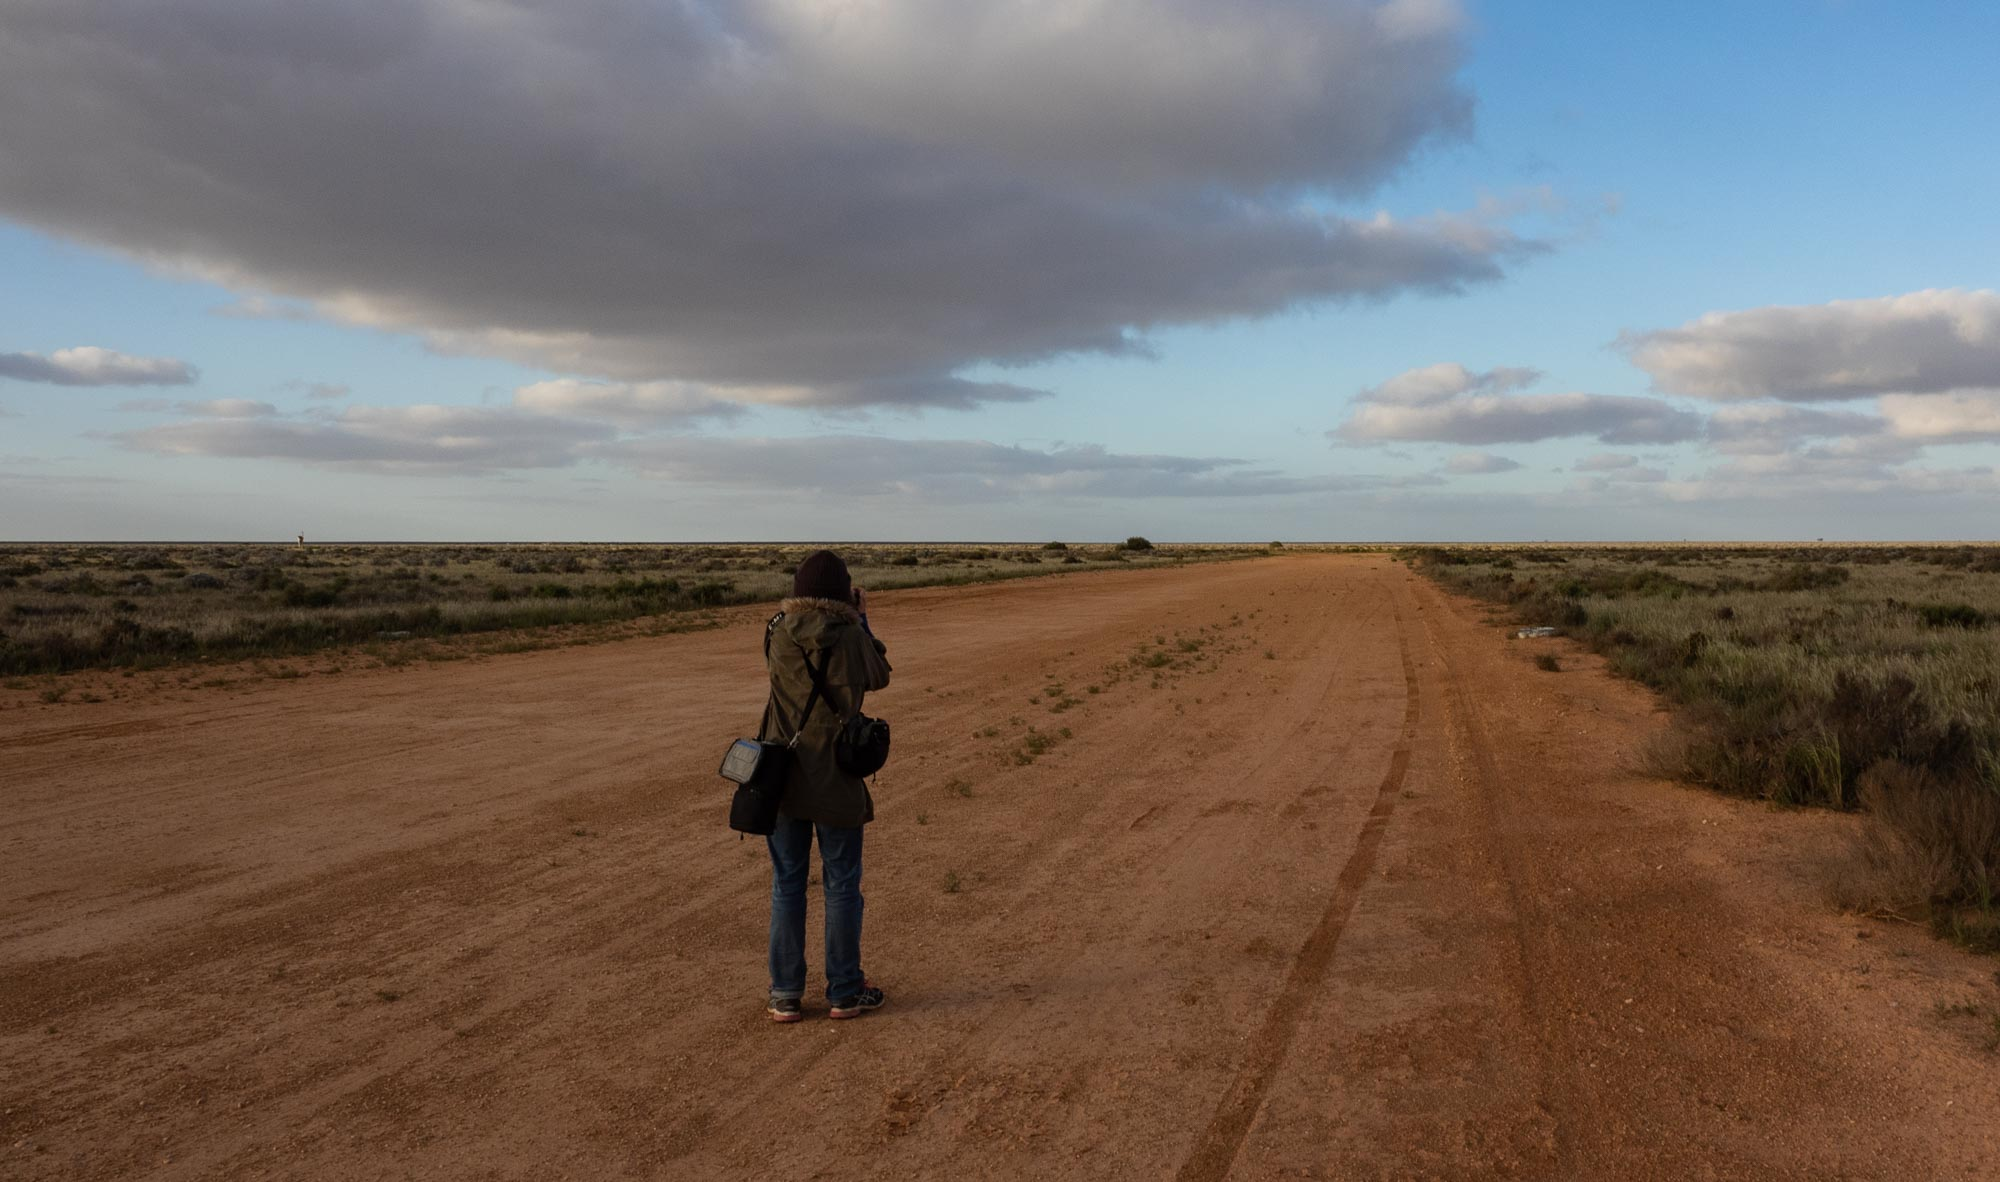 Kerri stalking her prey on the access road to the Nullarbor Airstrip. Perfect bird habitat!